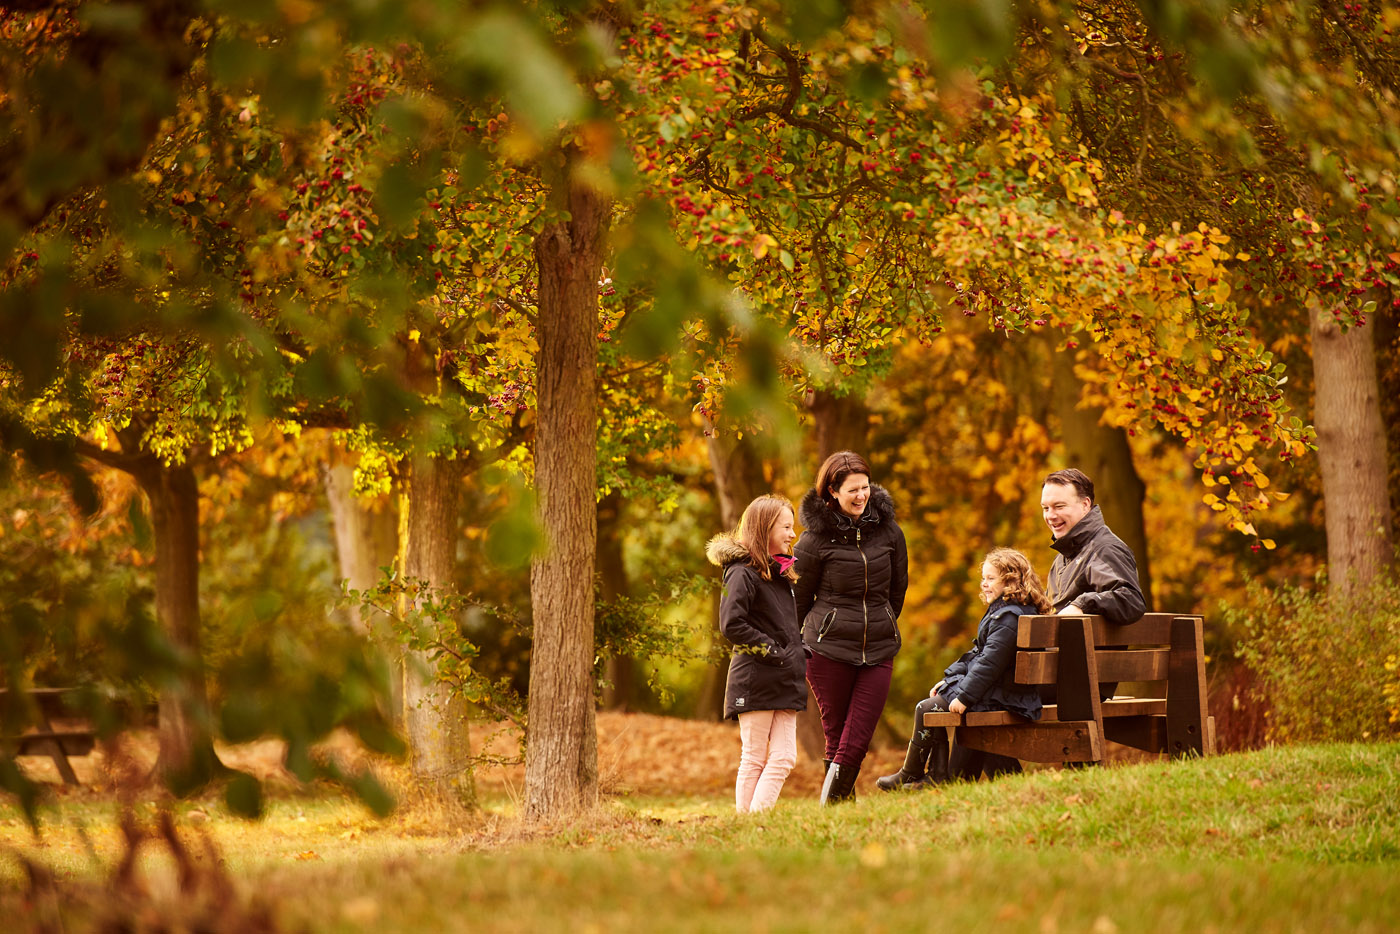 A family taking on a bench in the Autumn